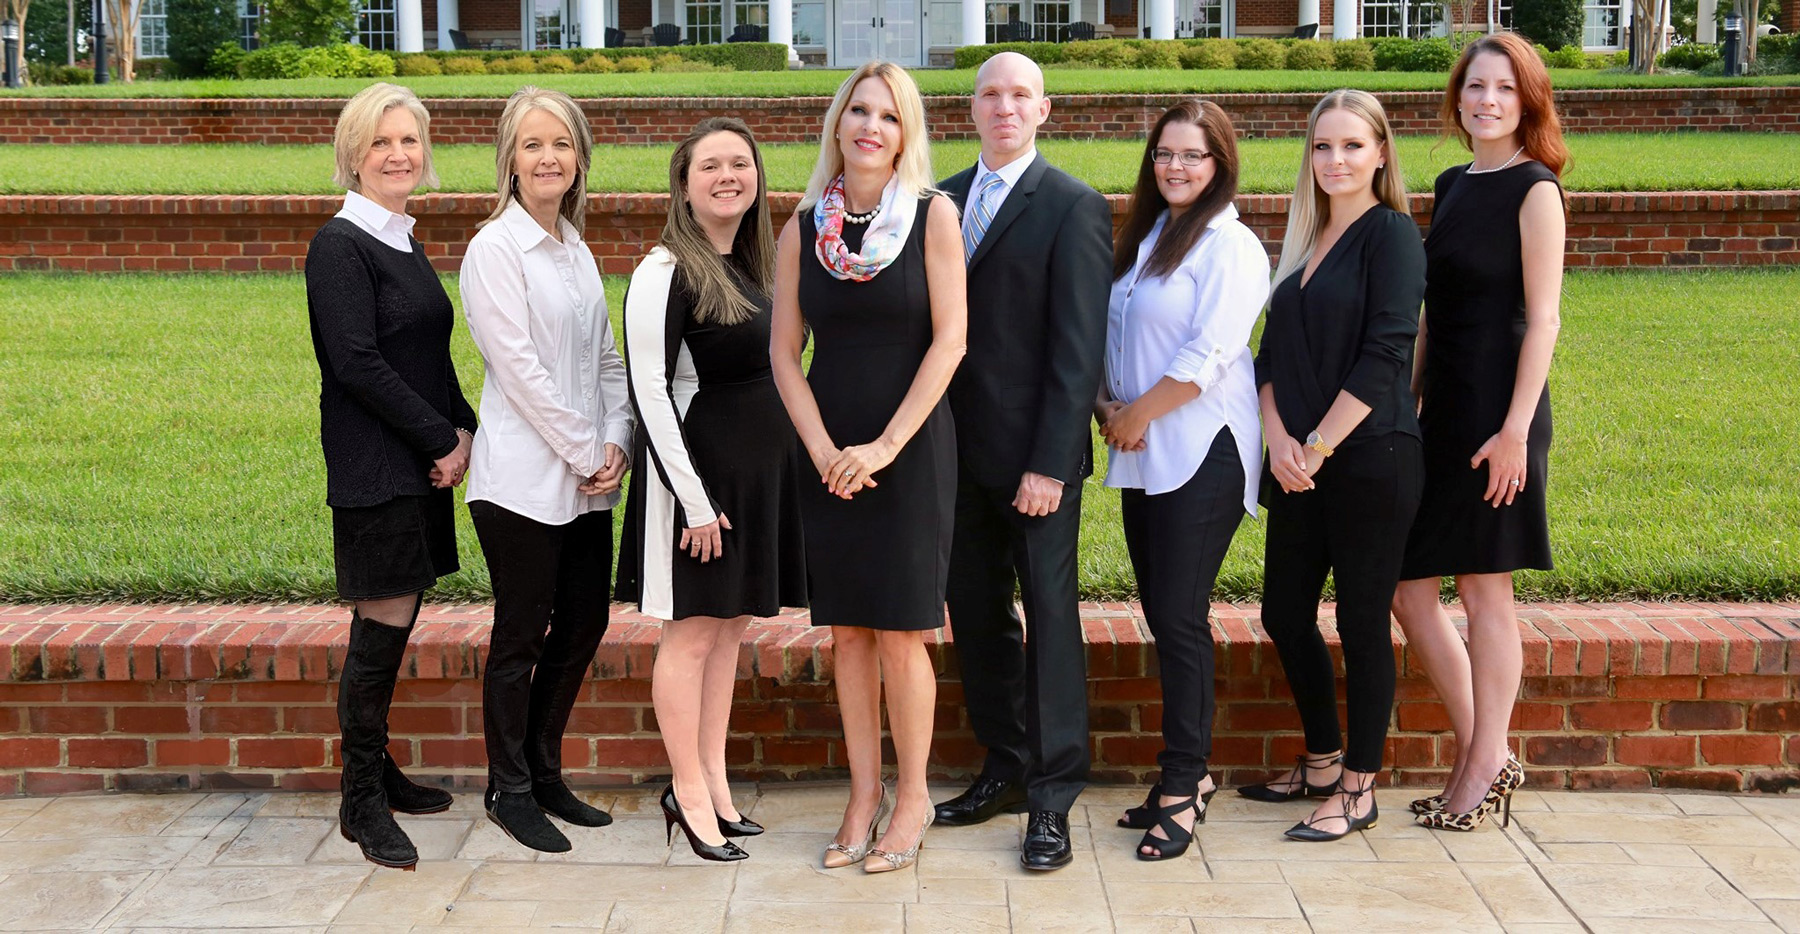 The Carolyn Young Real Estate Team